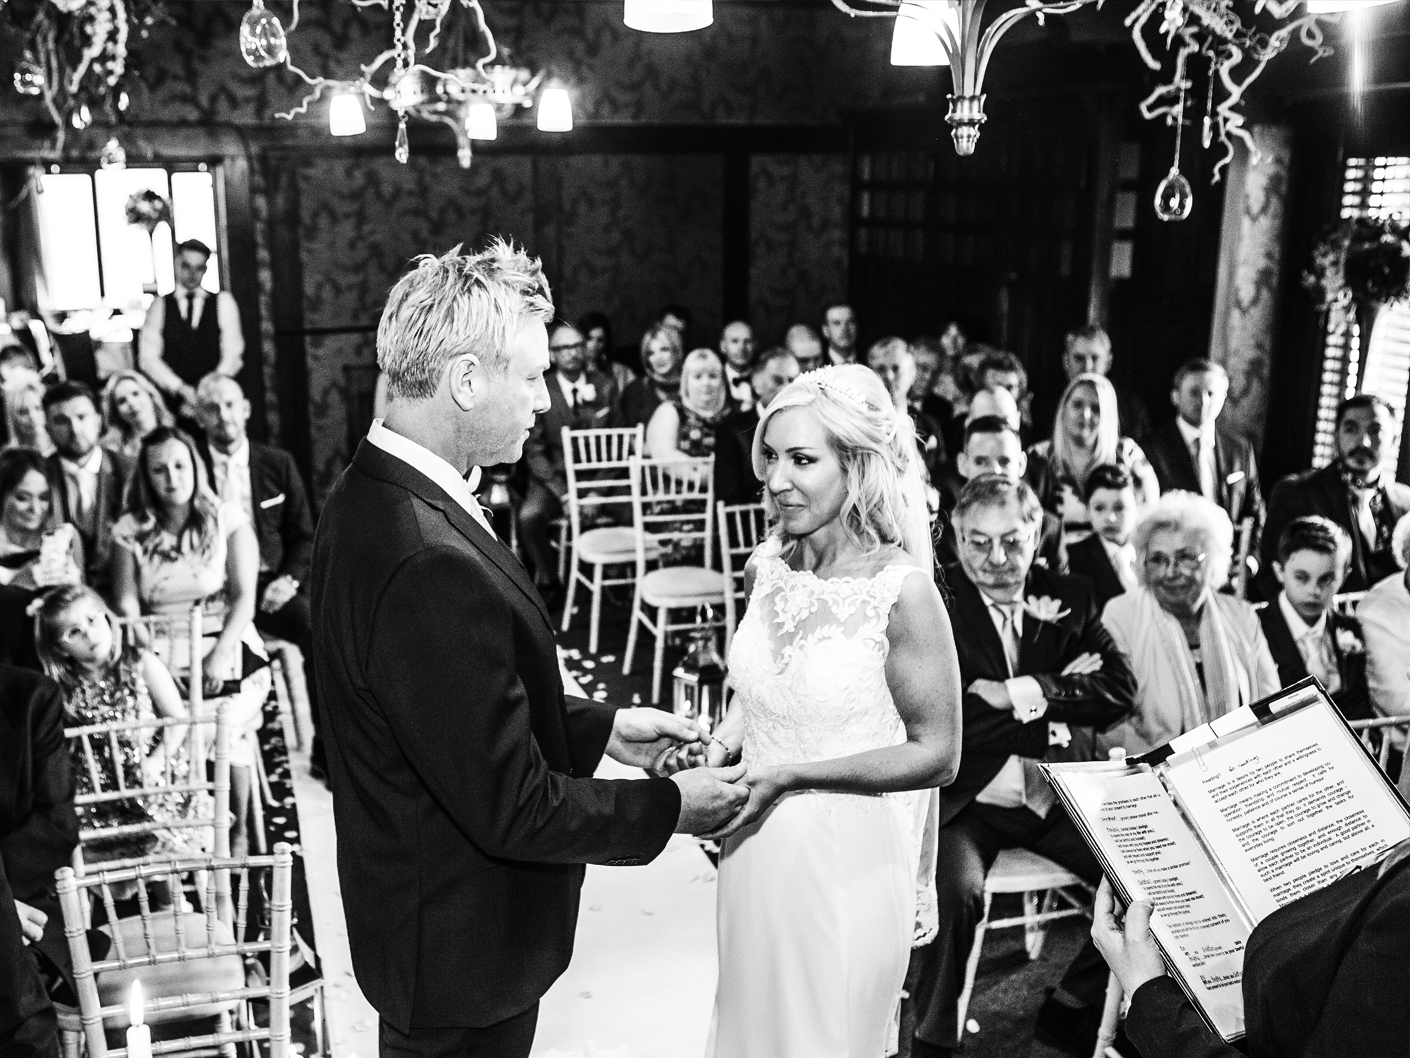 wedding-photography-at-the-civil-wedding-ceremony-in-knutsford-cheshire